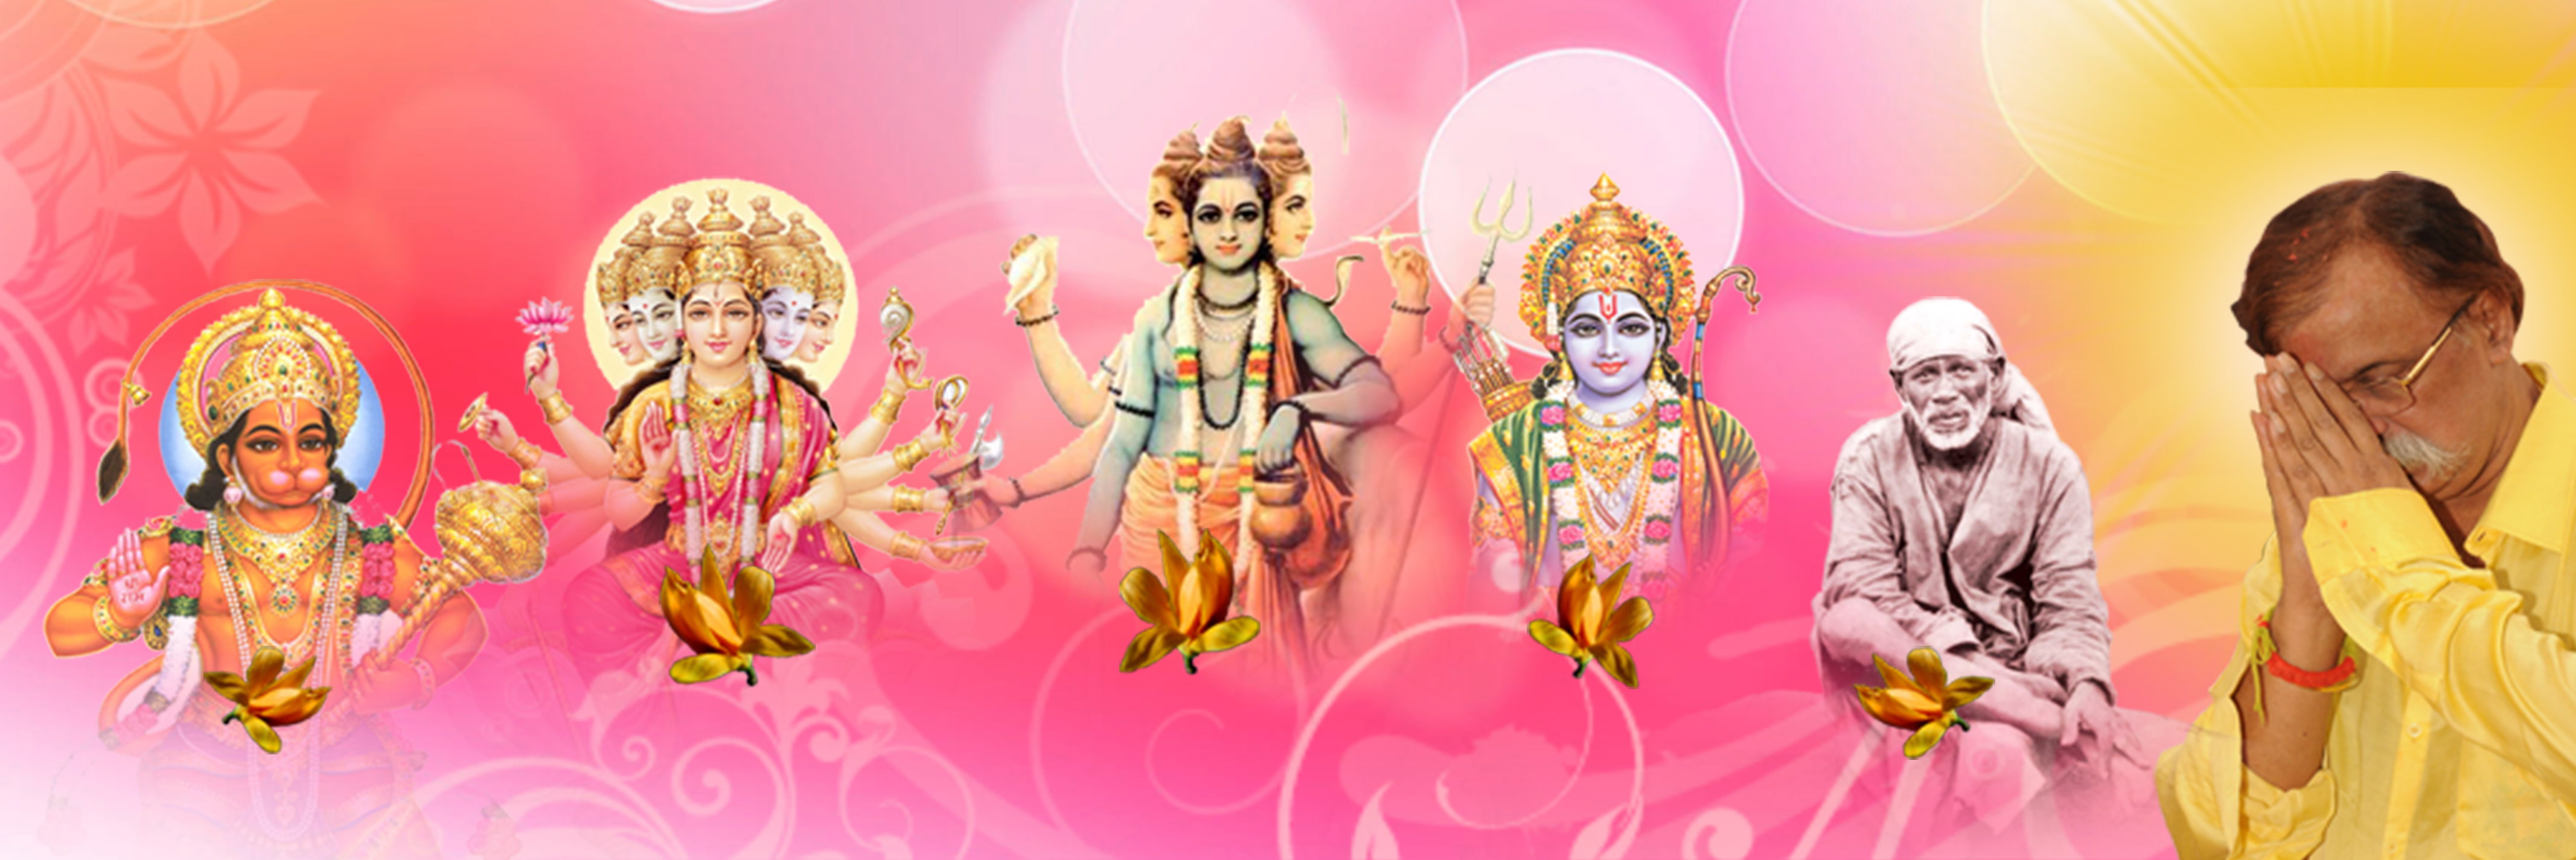 AniruddhaFoundation-Panchagurus-His Five Gurus